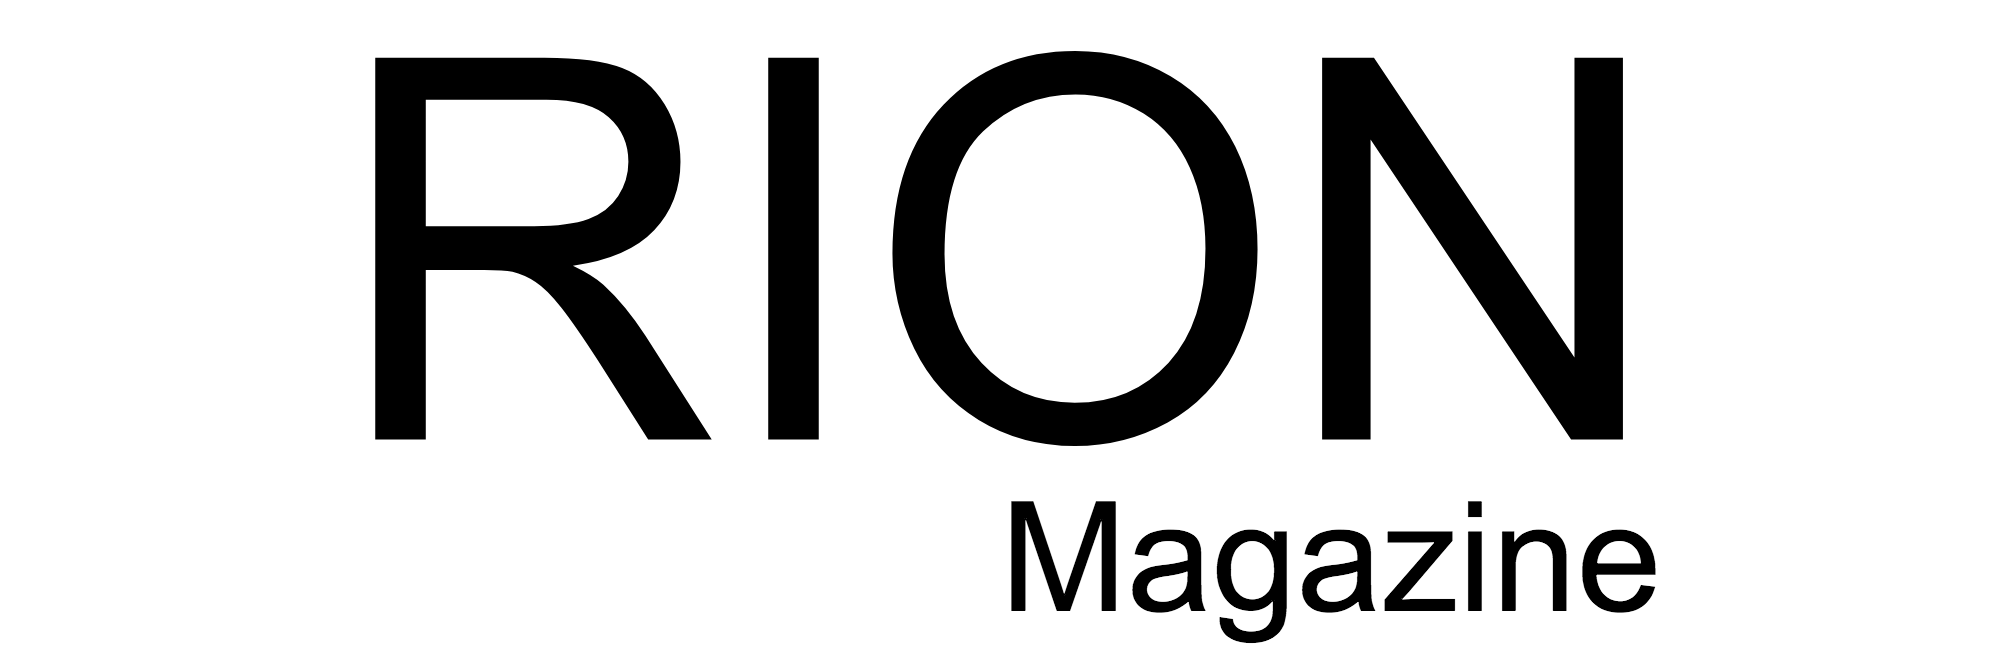 cropped-RION-logo-1.png